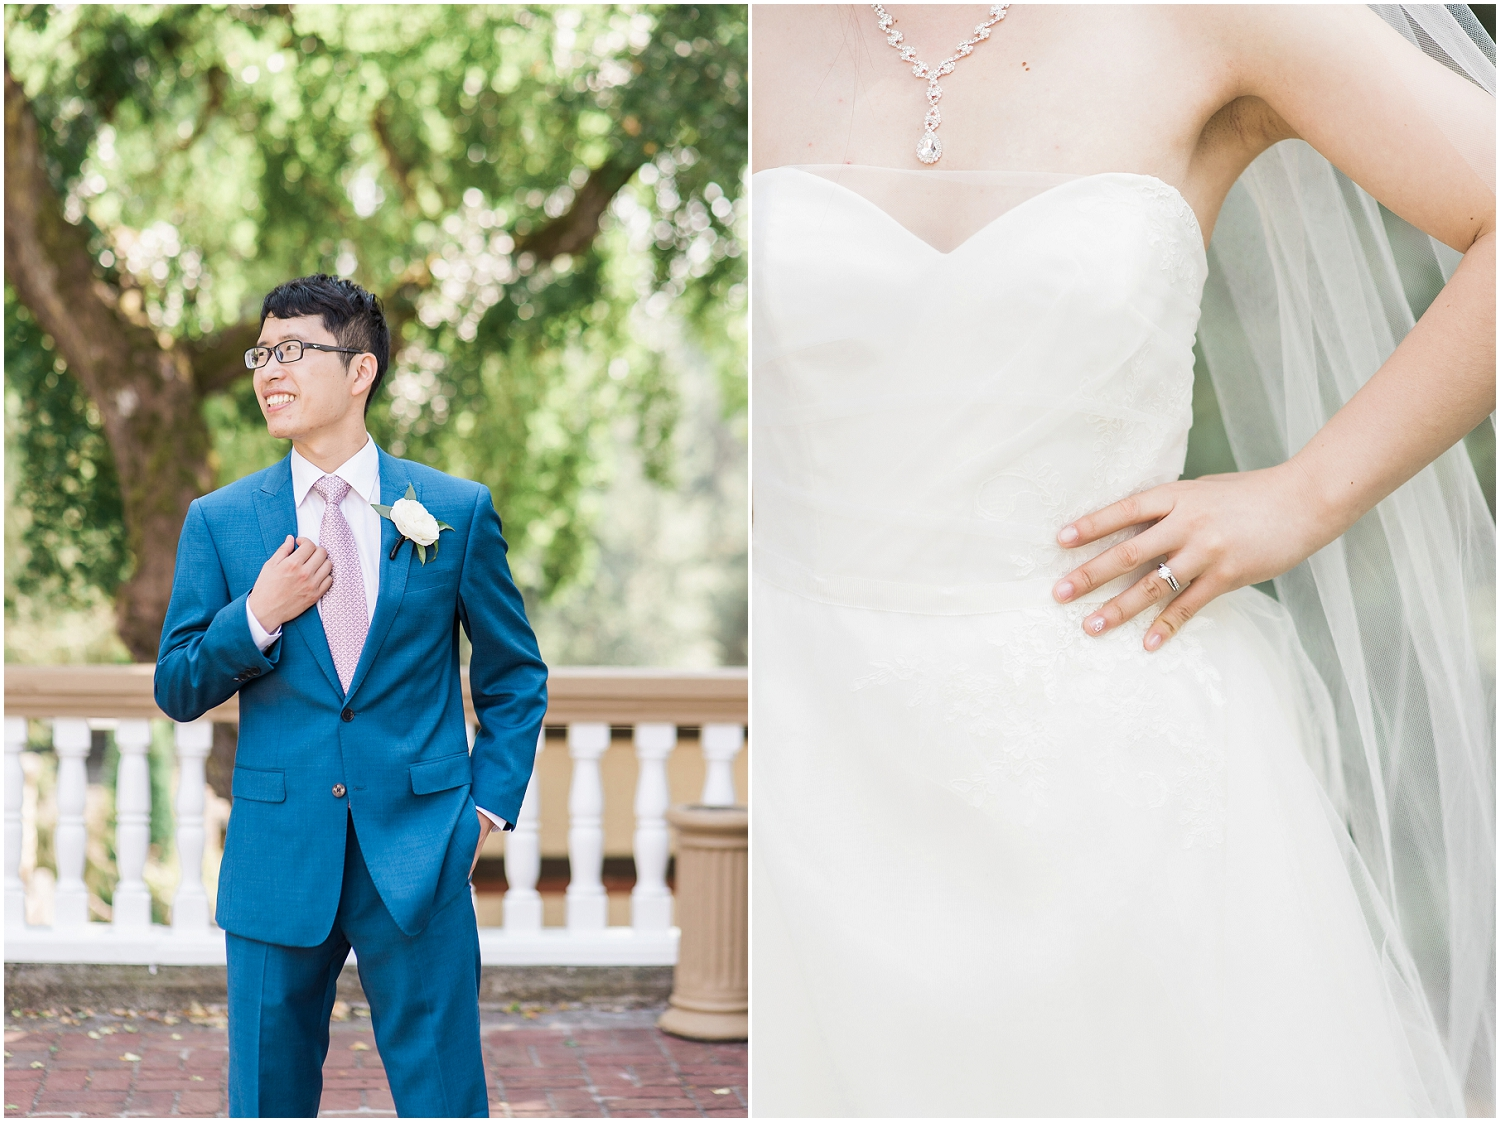 Lairmont, Bellingham, Elegant Weddings, Asian Wedding, Saint Laurent, PNW Weddings, Armsale, Calvin Klein, Blush and Blue Wedding